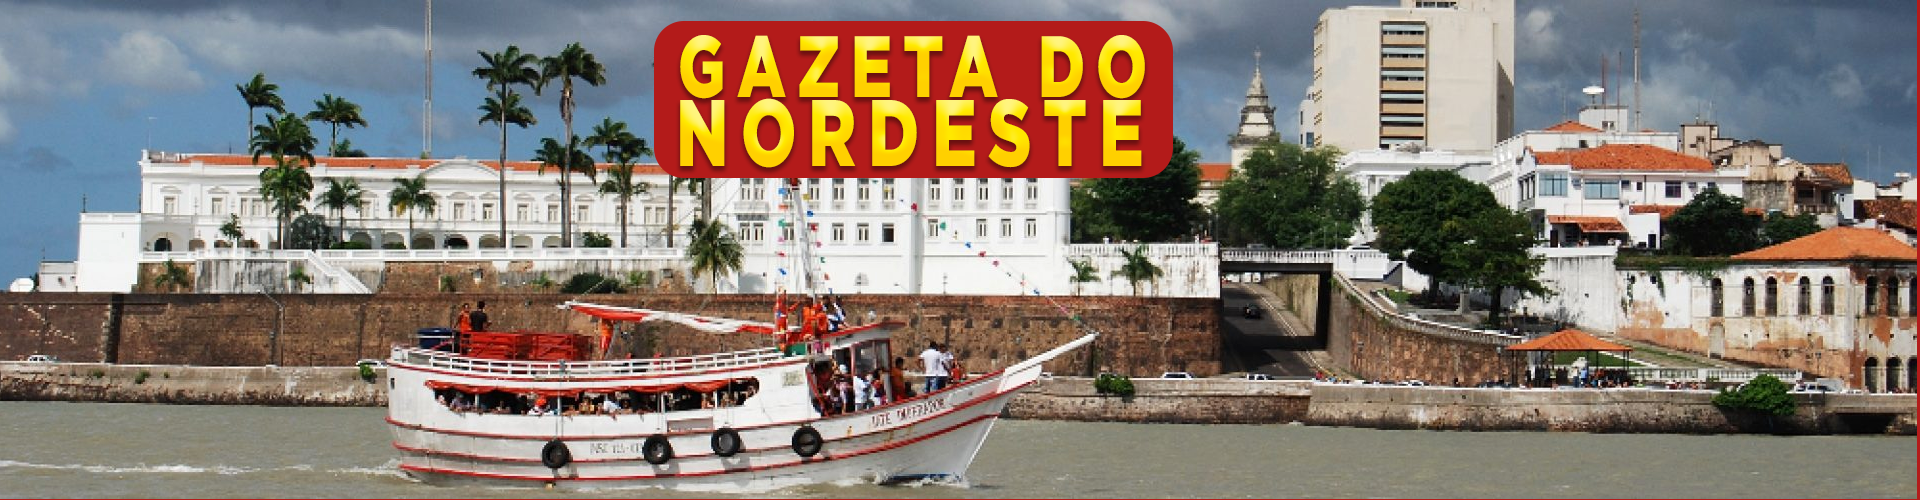 Gazeta do Nordeste